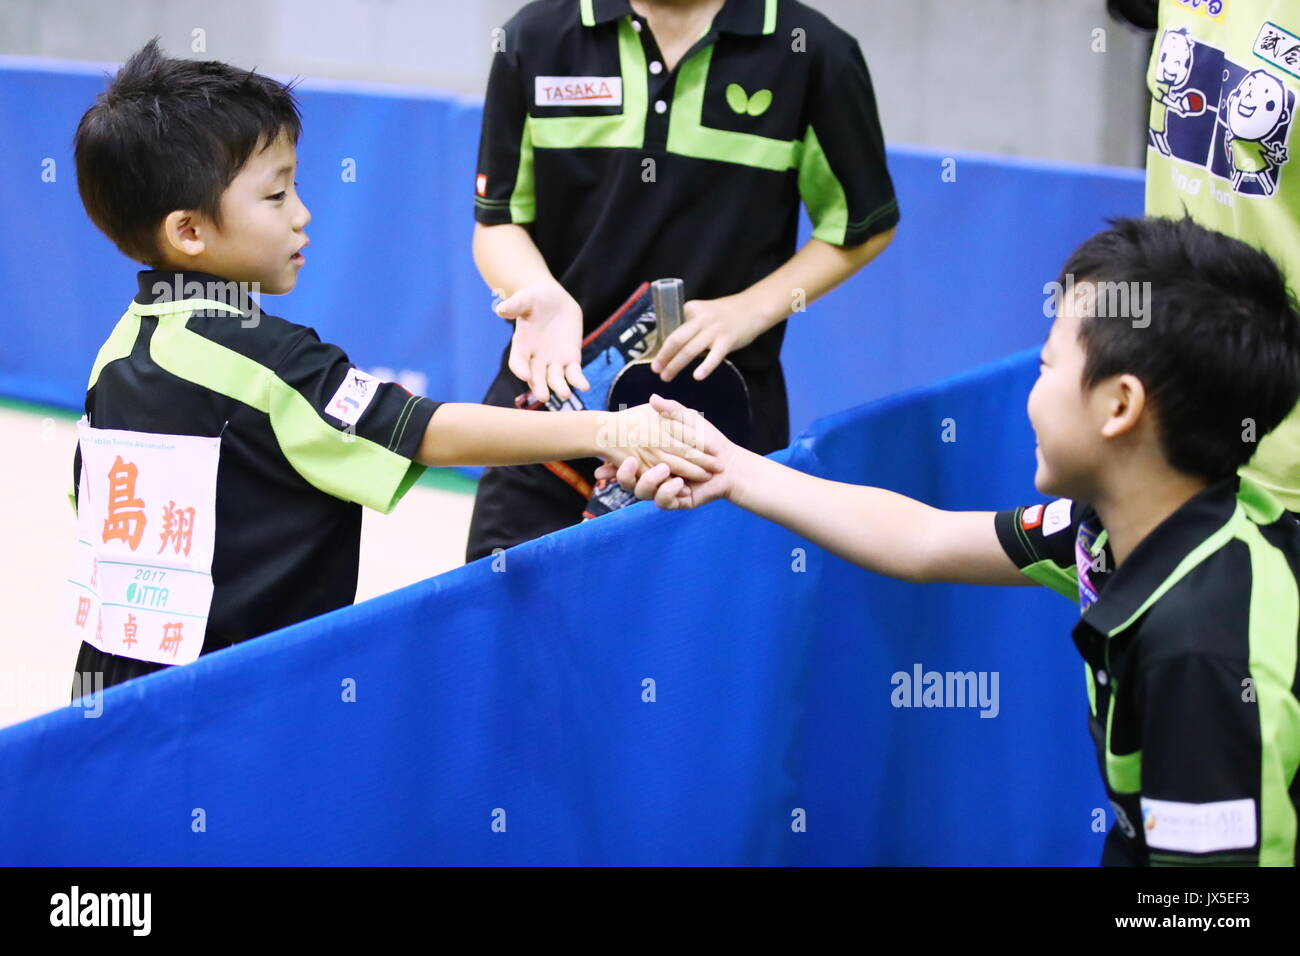 Tokyo Metropolitan Gymnasium, Tokyo, Japan. 14th Aug, 2017. (L-R) Toa Matsushirta. Sora Matsushita, AUGUST 14, 2017 - Table Tennis :The 35th National Hoops Table Tennis Competition Women's Singles at Tokyo Metropolitan Gymnasium, Tokyo, Japan. Credit: Sho Tamura/AFLO/Alamy Live News - Stock Image